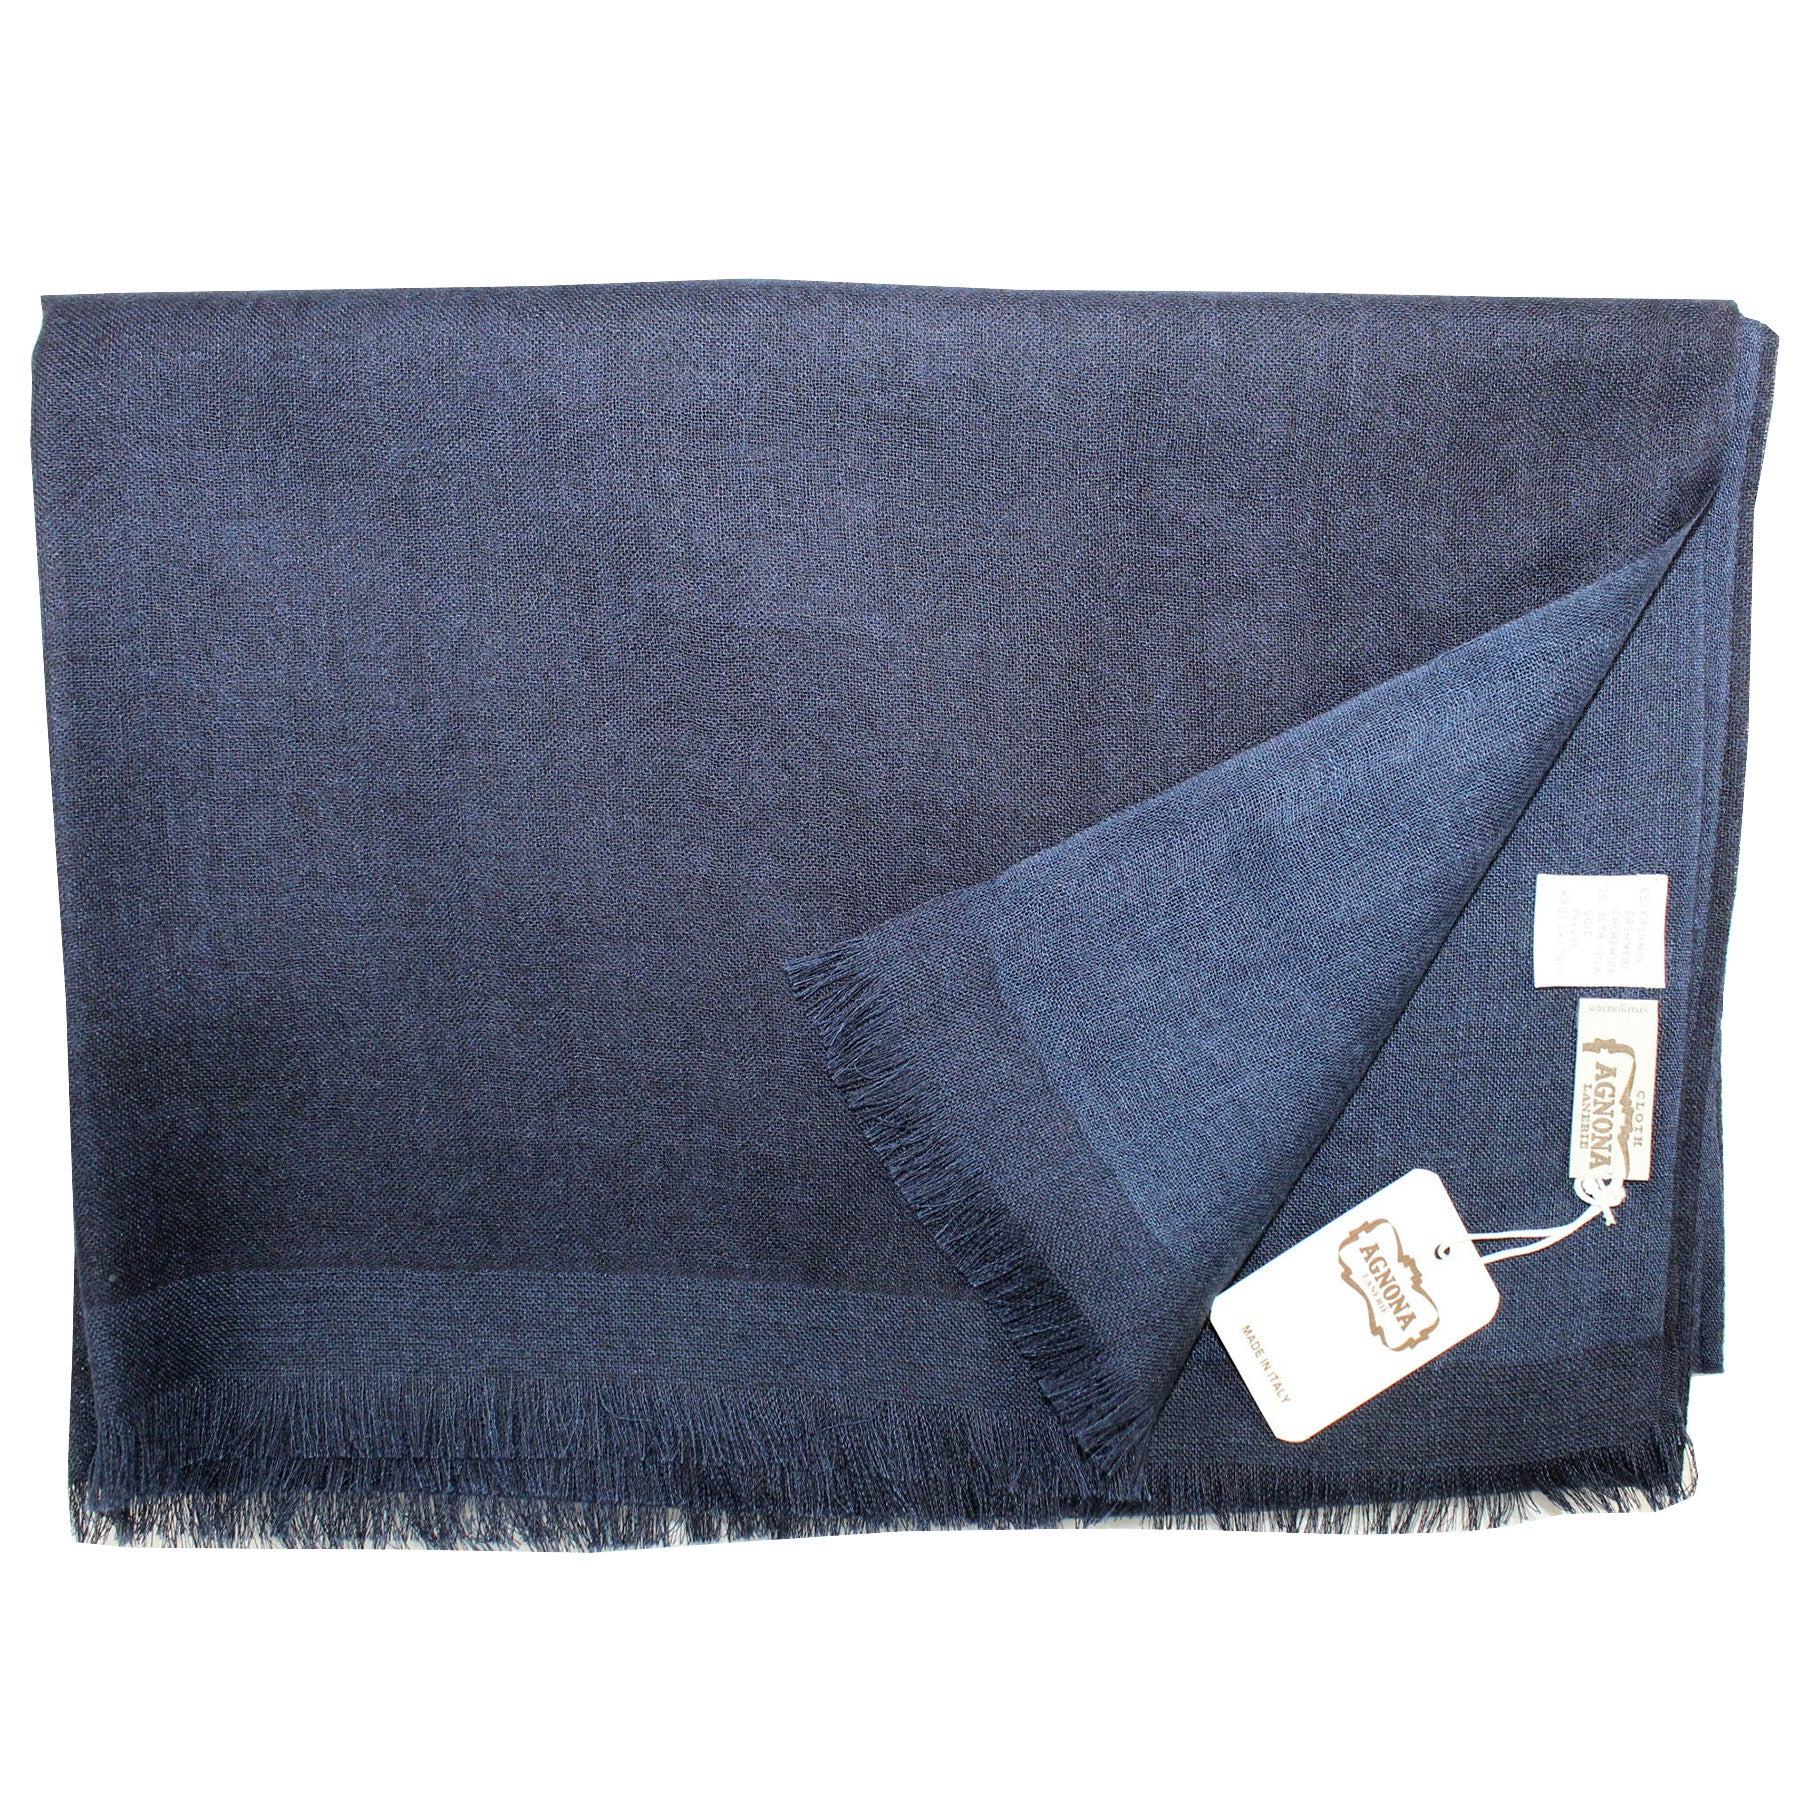 Agnona Scarf Navy Solid - Cashmere Cotton Shawl